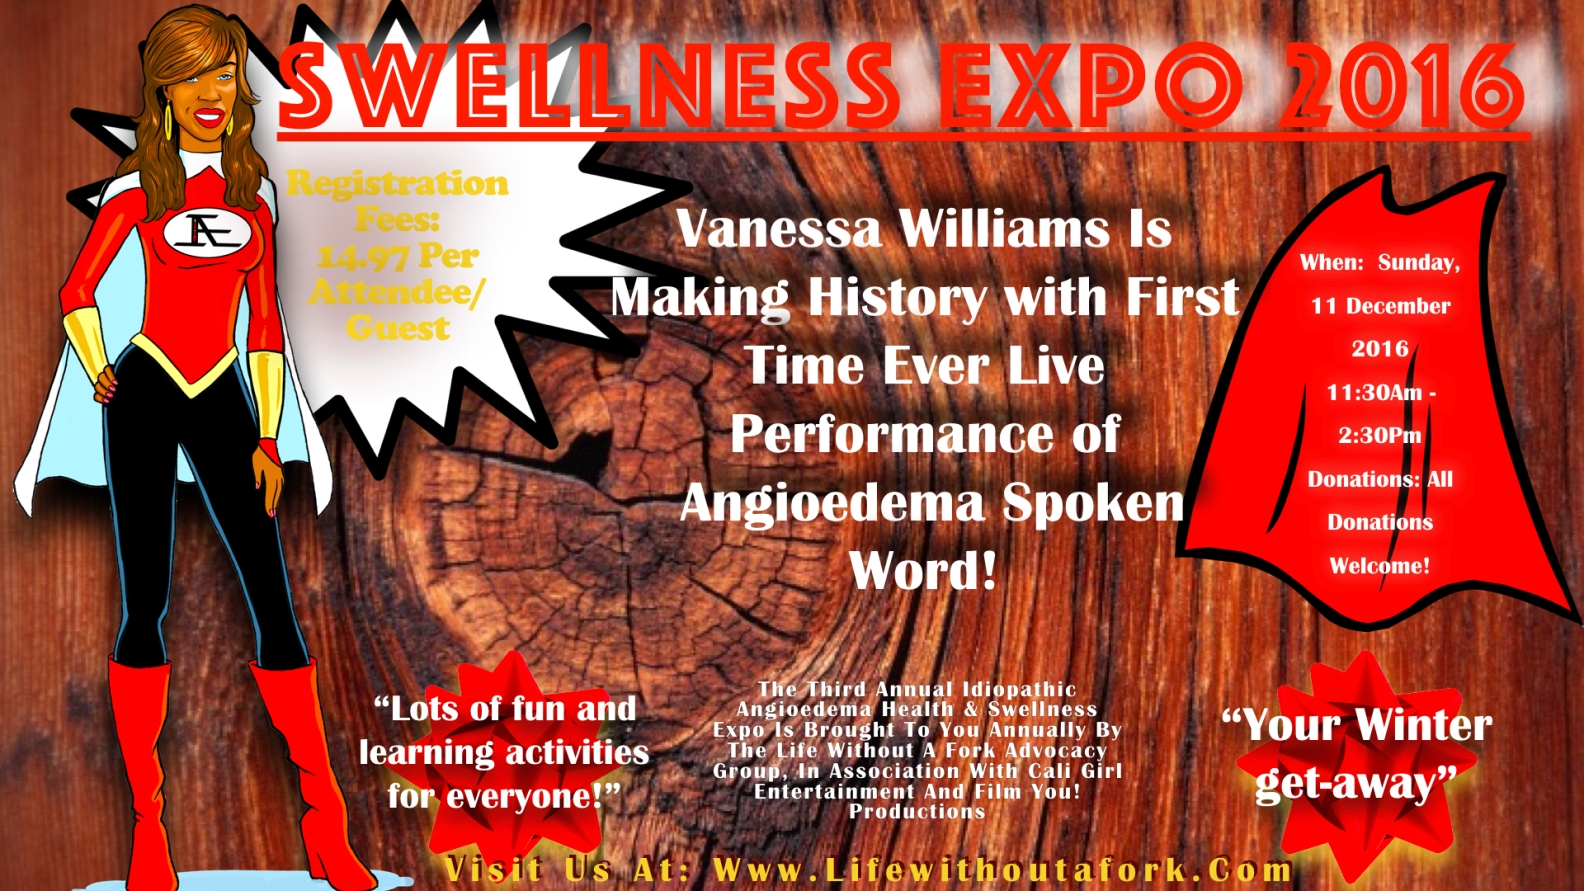 swellness-expo-2016-flyer-01-001